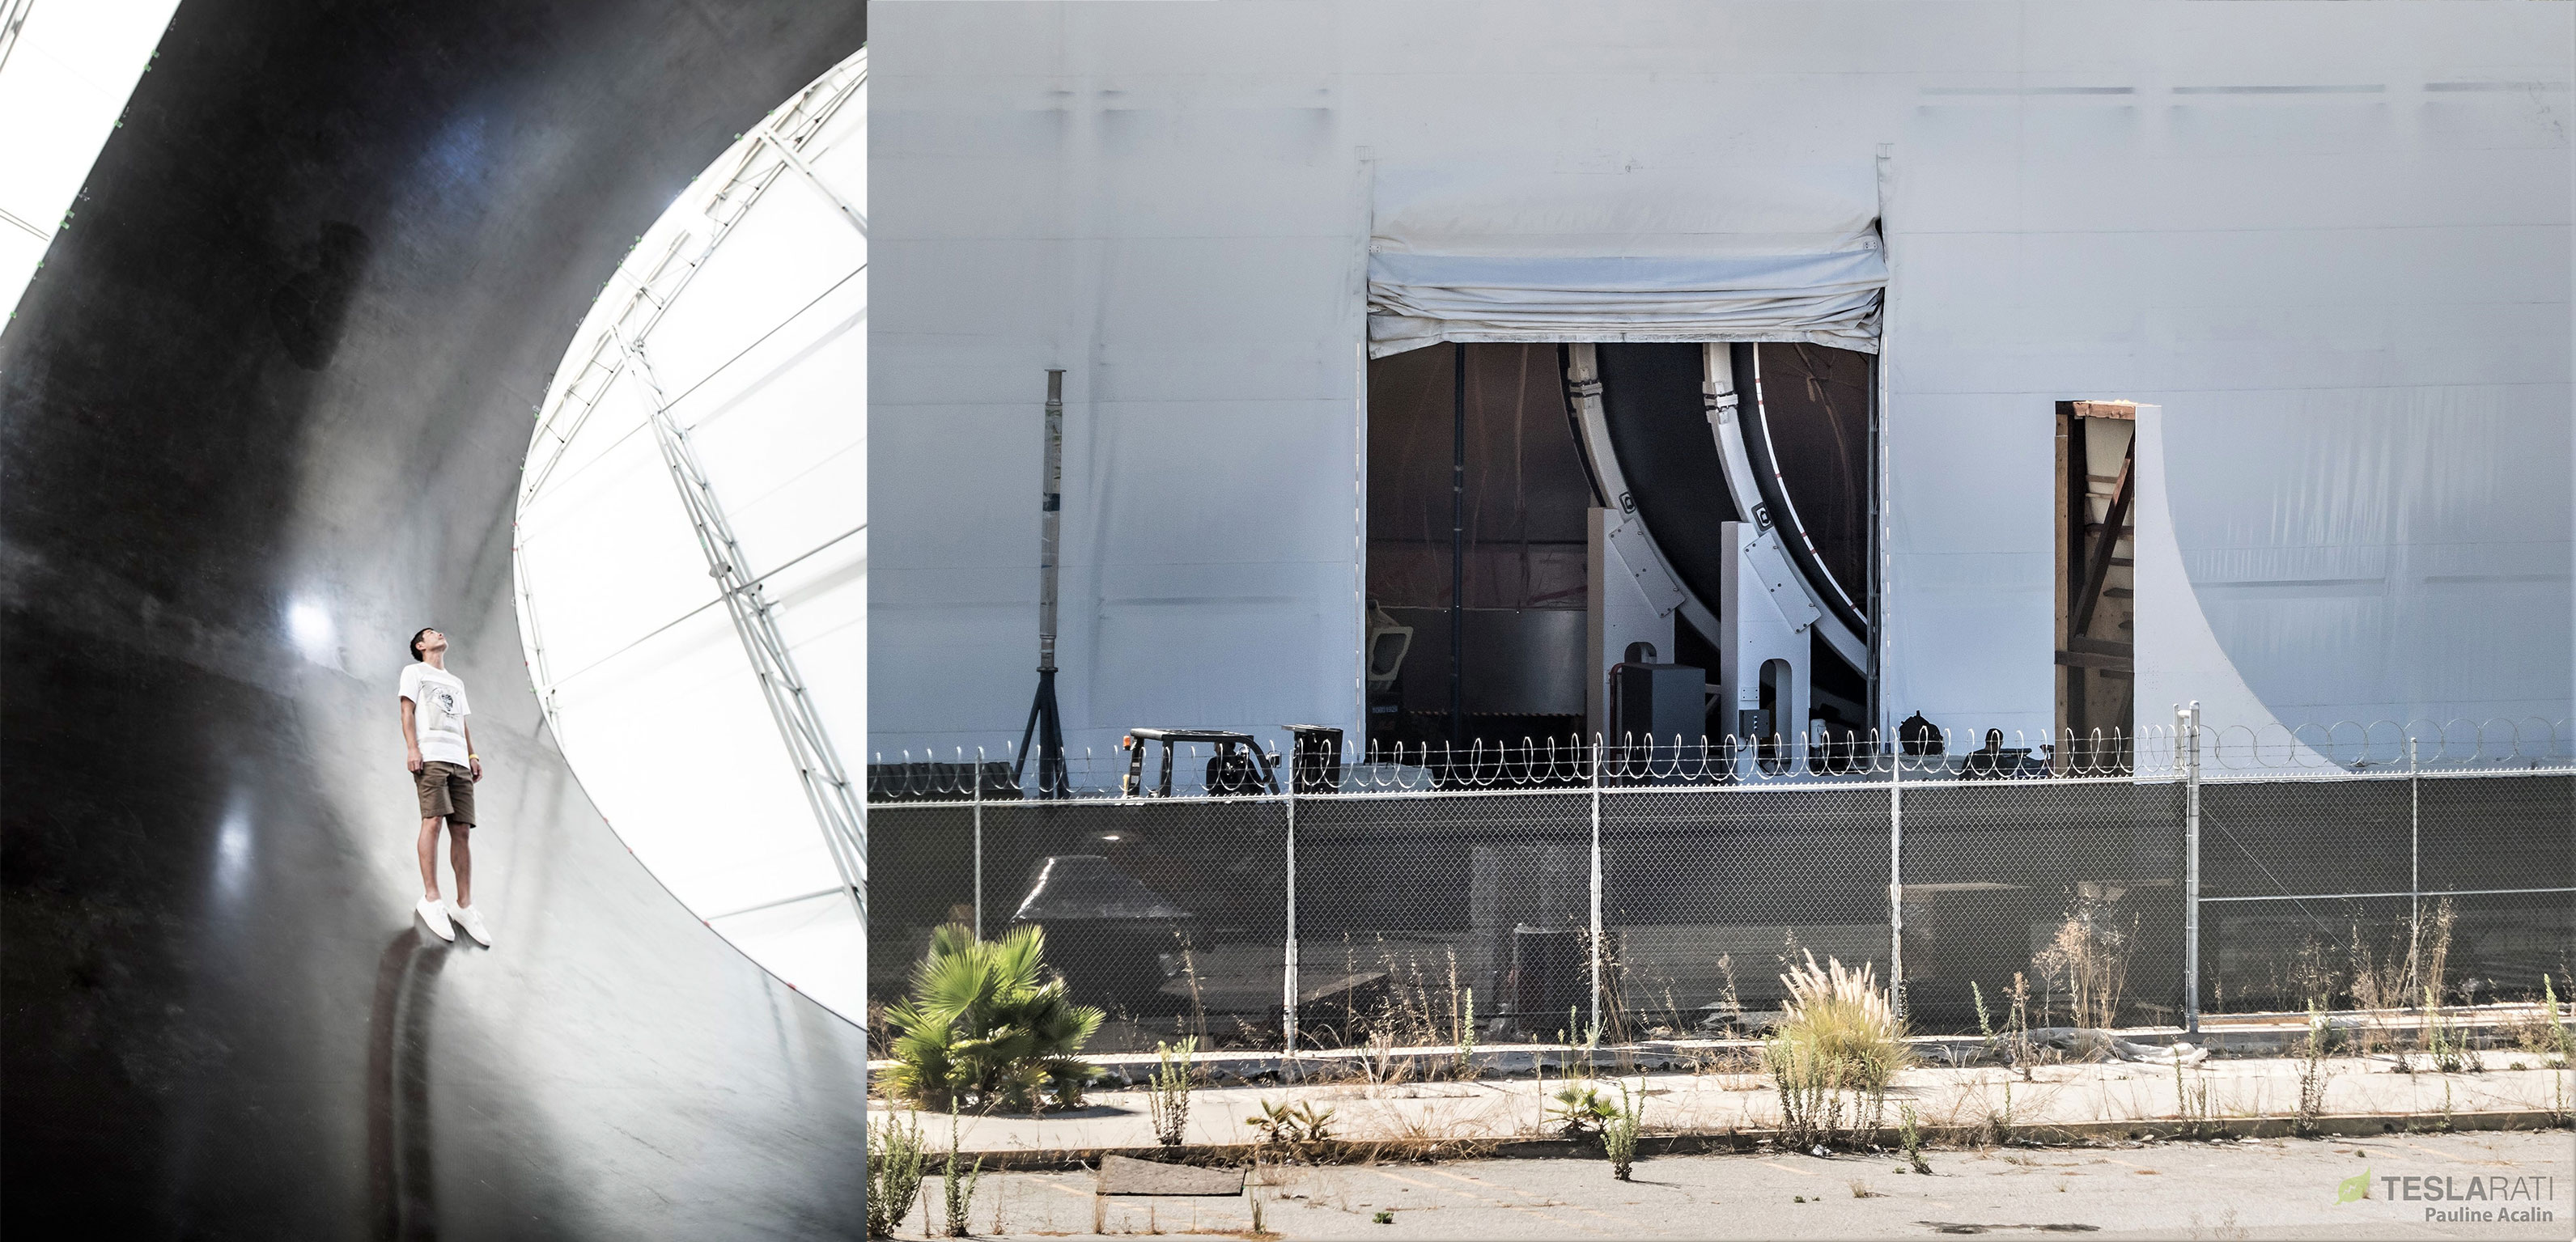 Spacex S First Completed Bfr Spaceship Section Spotted In